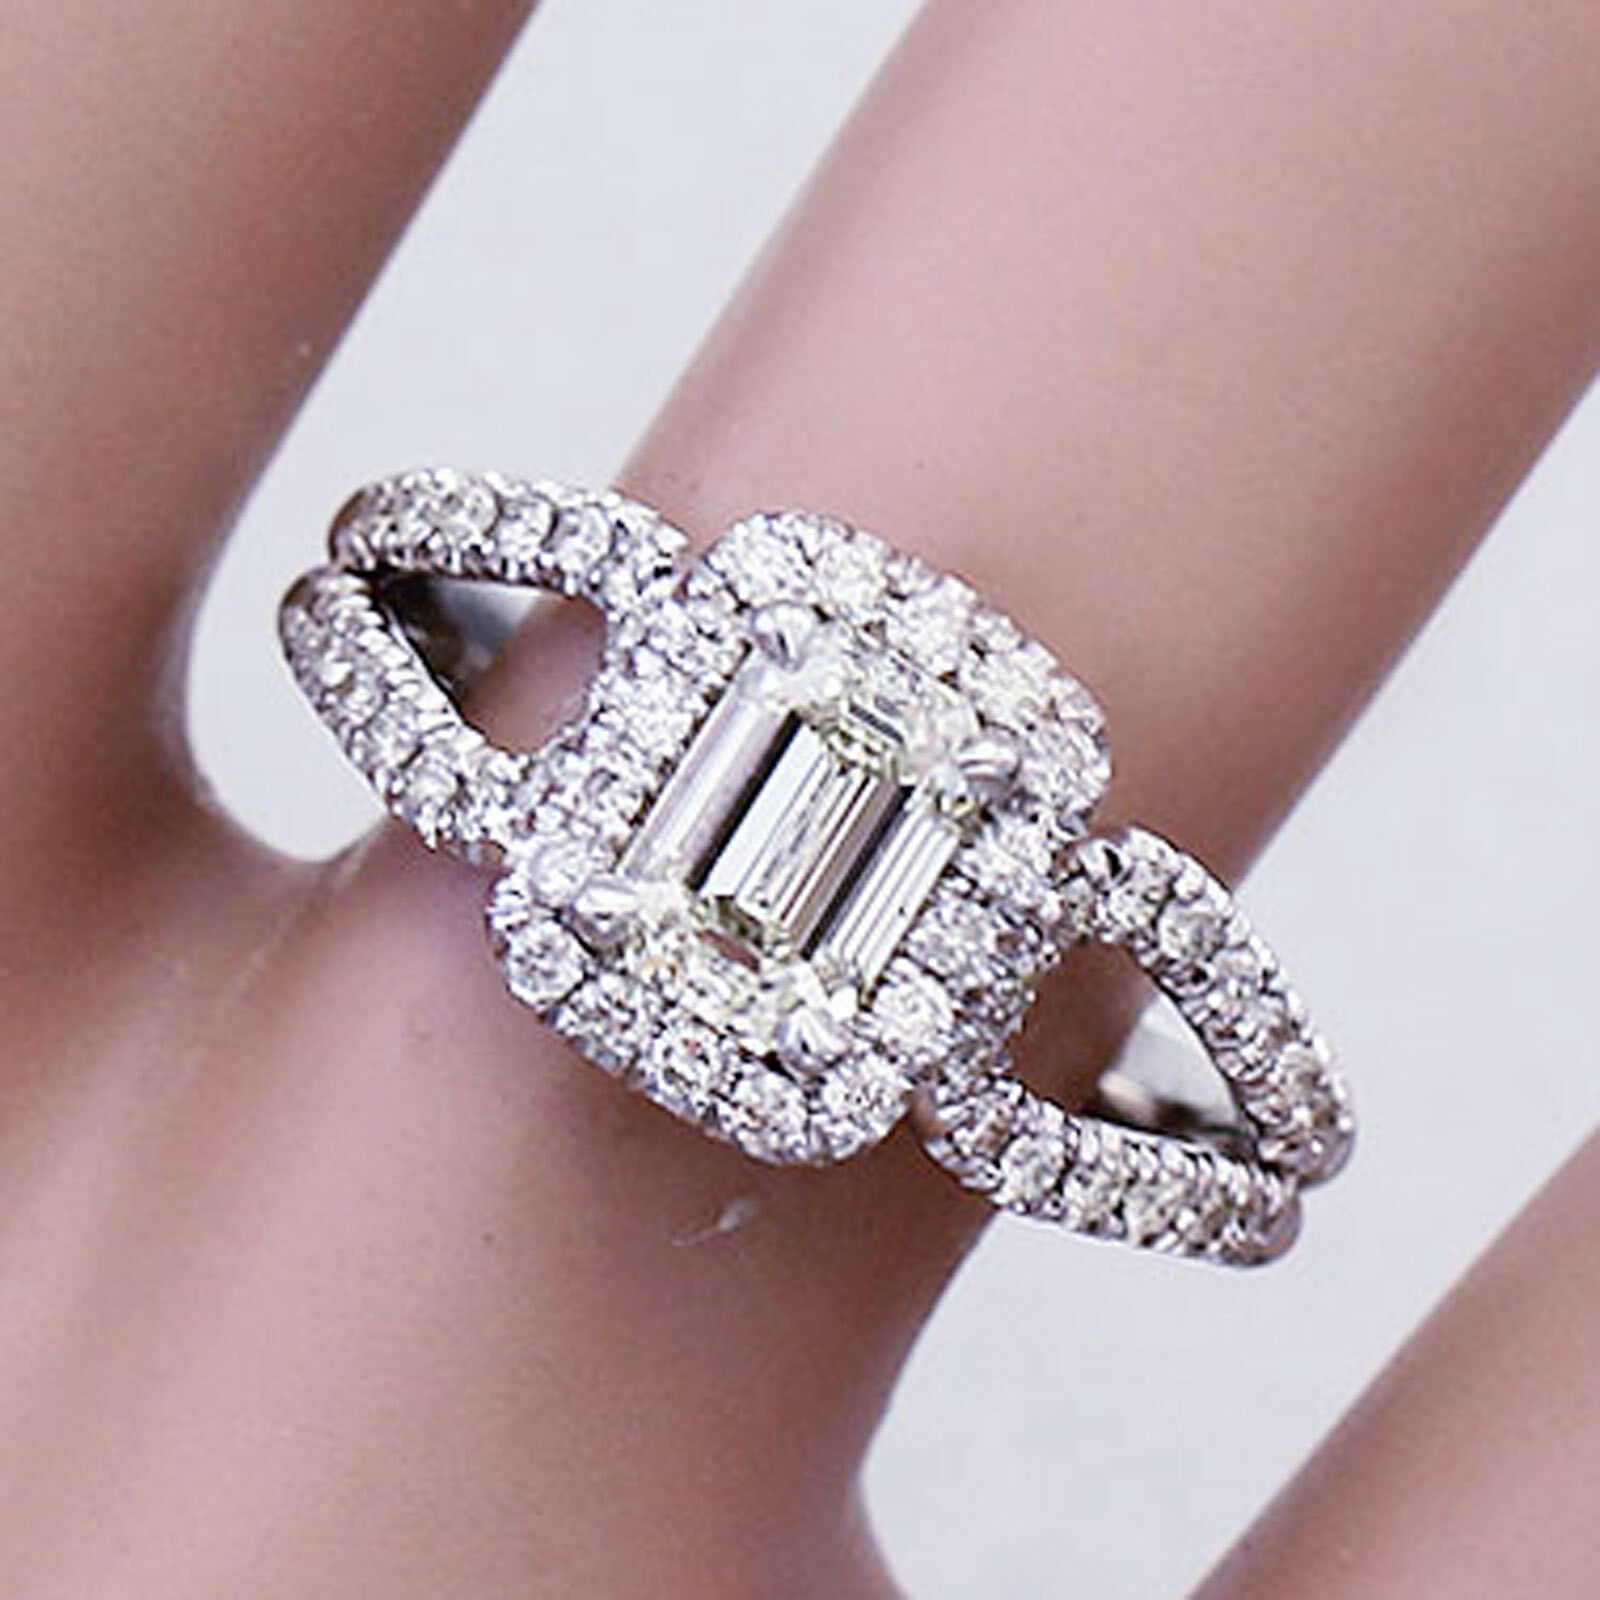 14K SOLID WHITE gold EMERALD CUT DIAMOND ENGAGEMENT RING DECO HALO 1.50CT